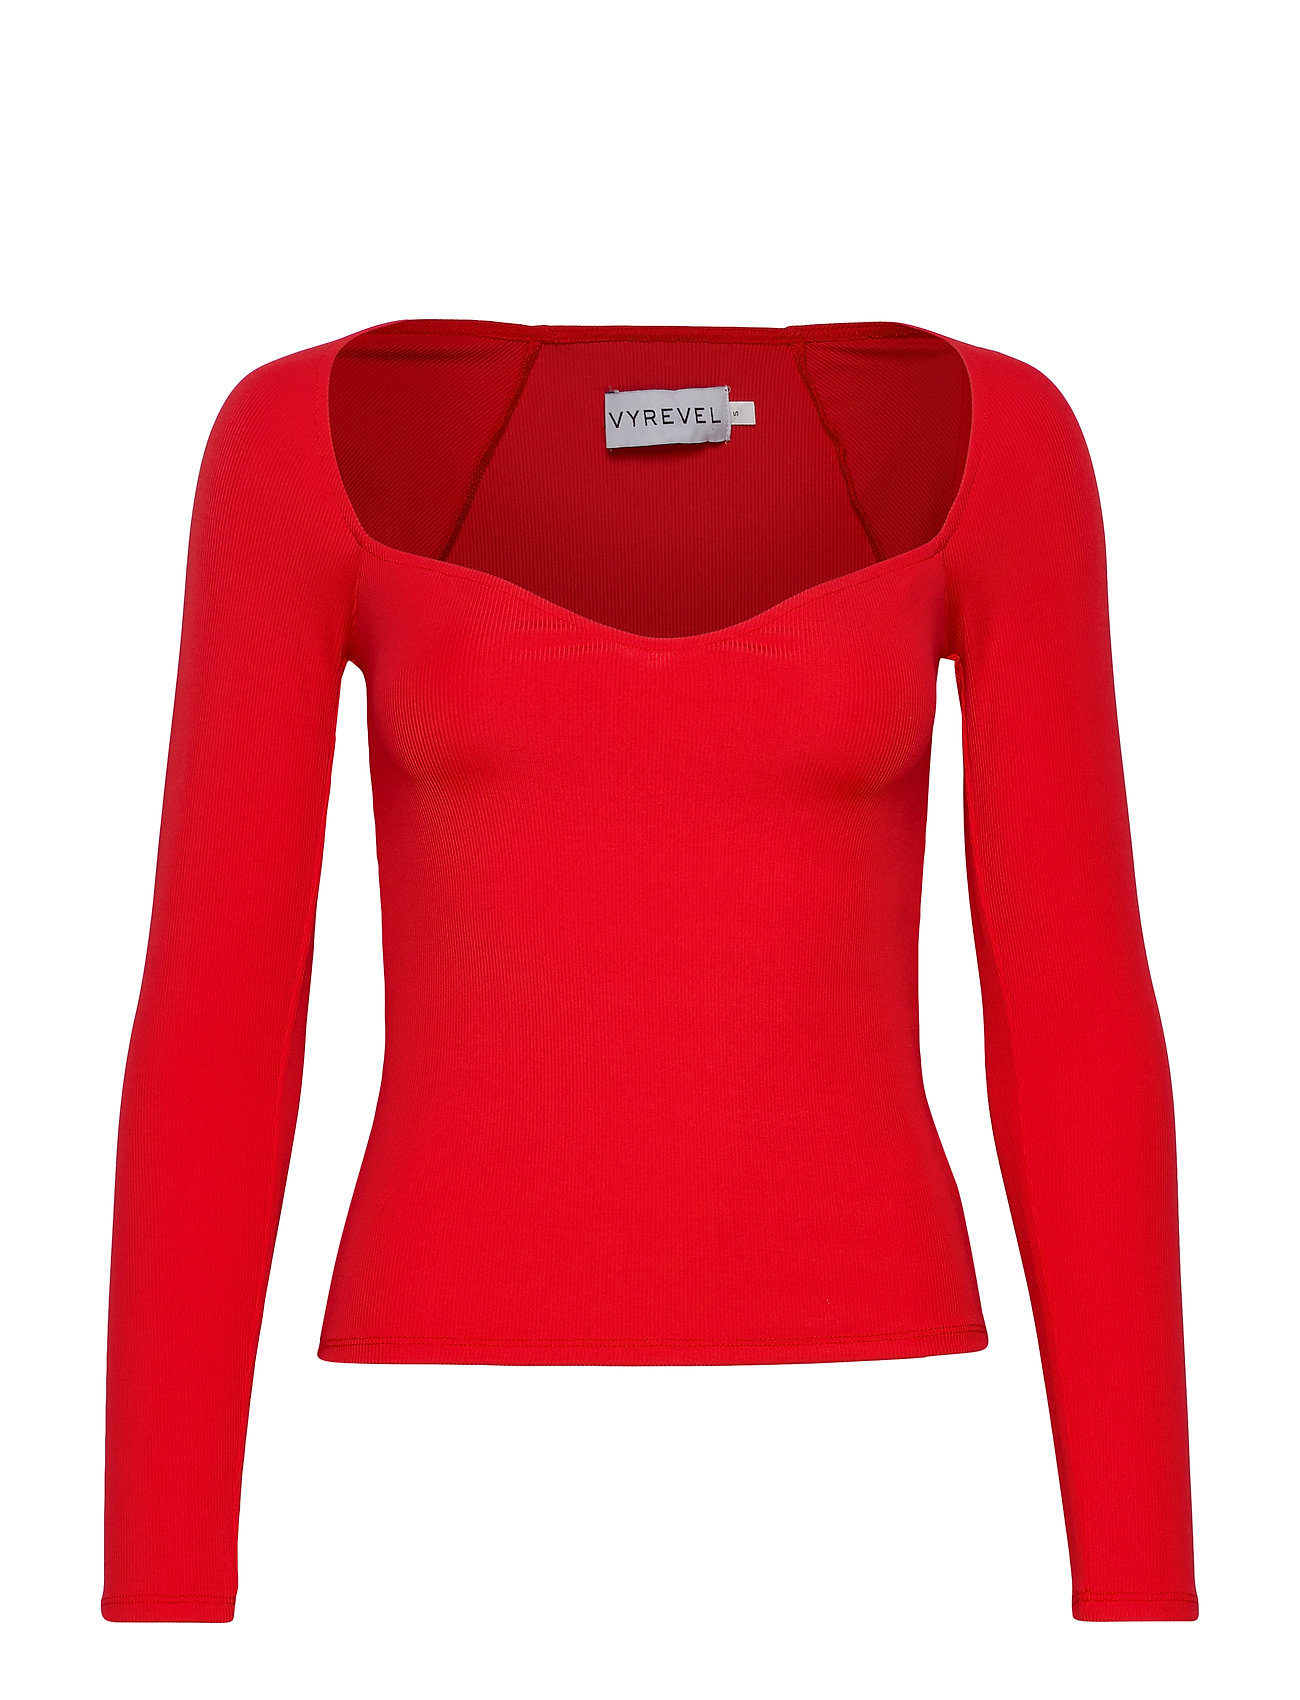 Ivyrevel HEART SHAPED TOP - RED